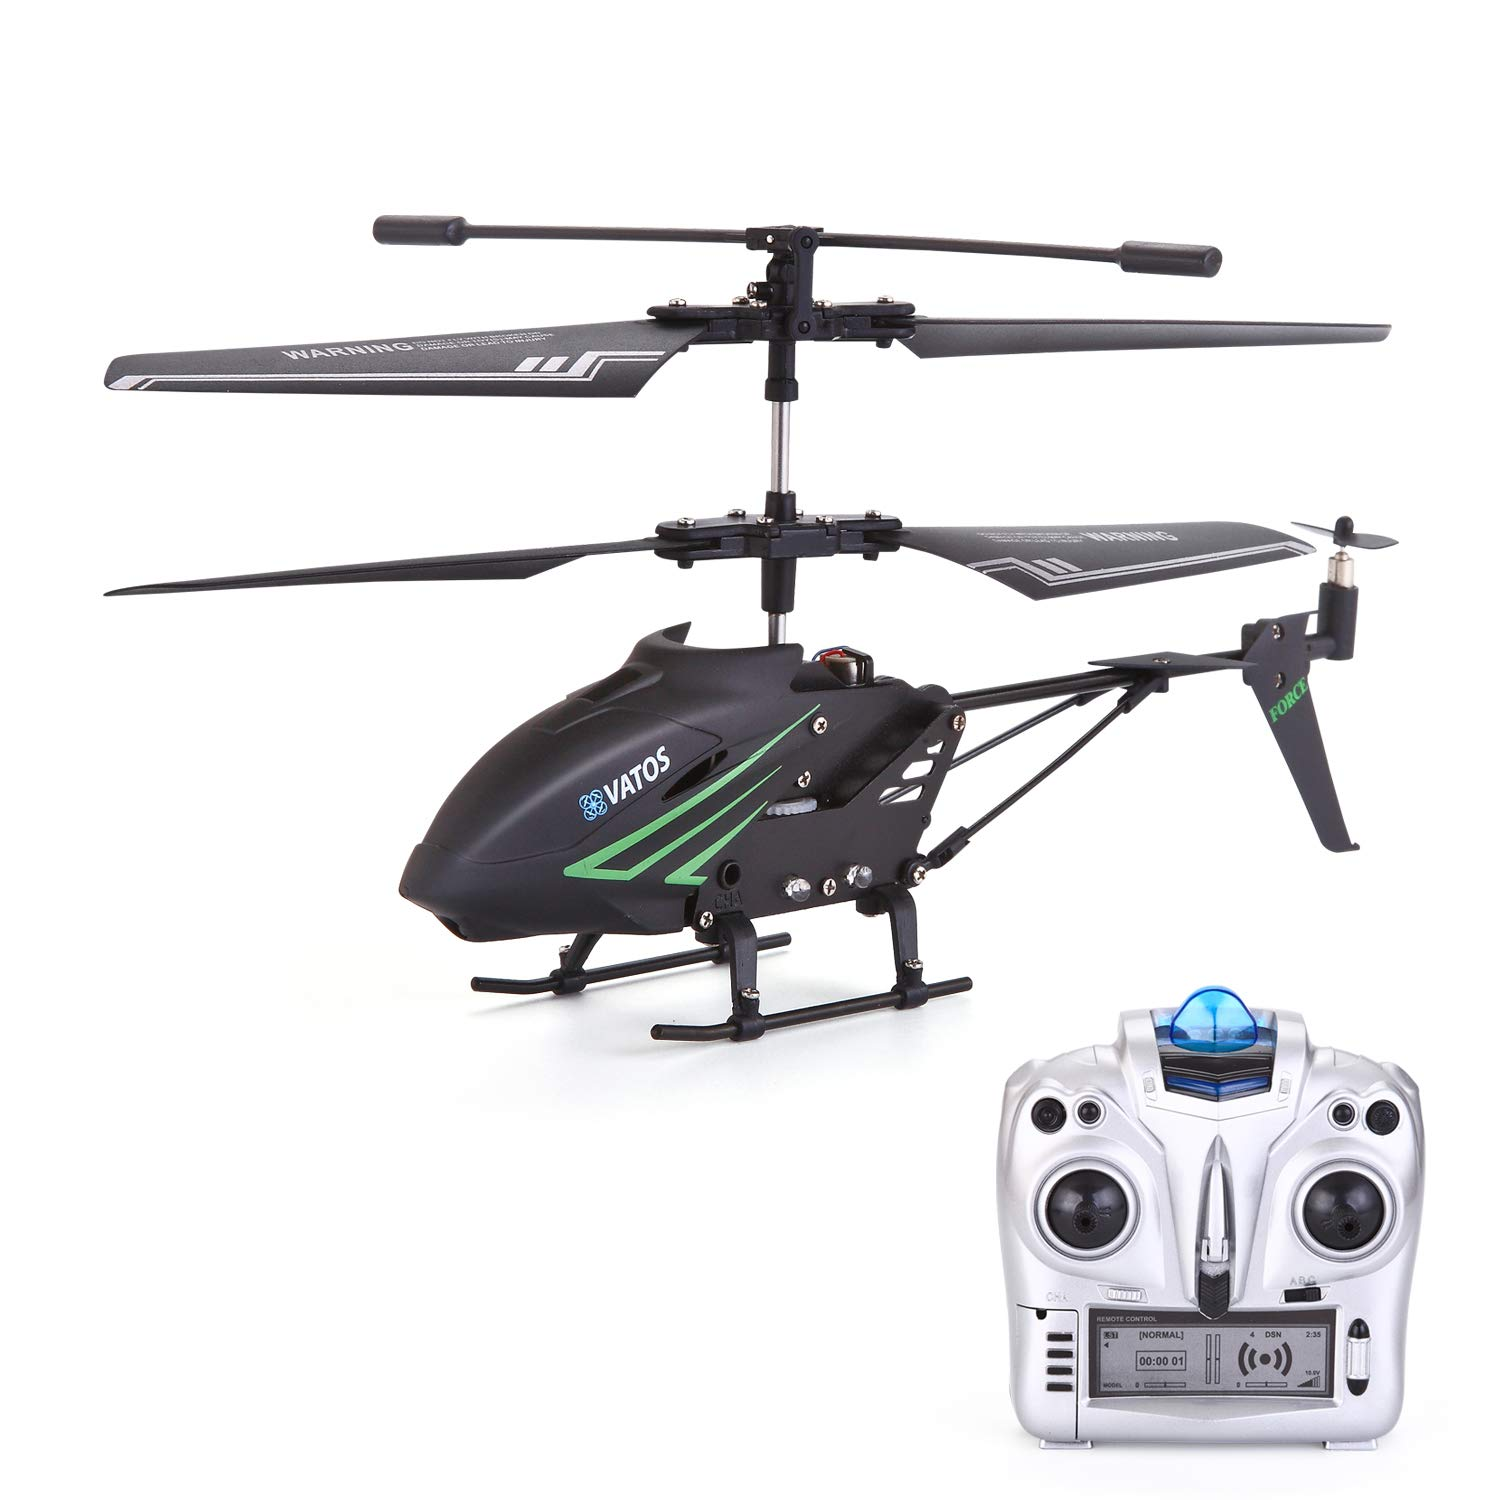 RC Helicopter, Remote Control Helicopter with Gyro and LED Light 3.5HZ Channel Alloy Mini Helicopter Remote Control for Kids & Adult Indoor Outdoor Micro RC Helicopter Best Helicopter Toy Gift by VATOS (Image #1)